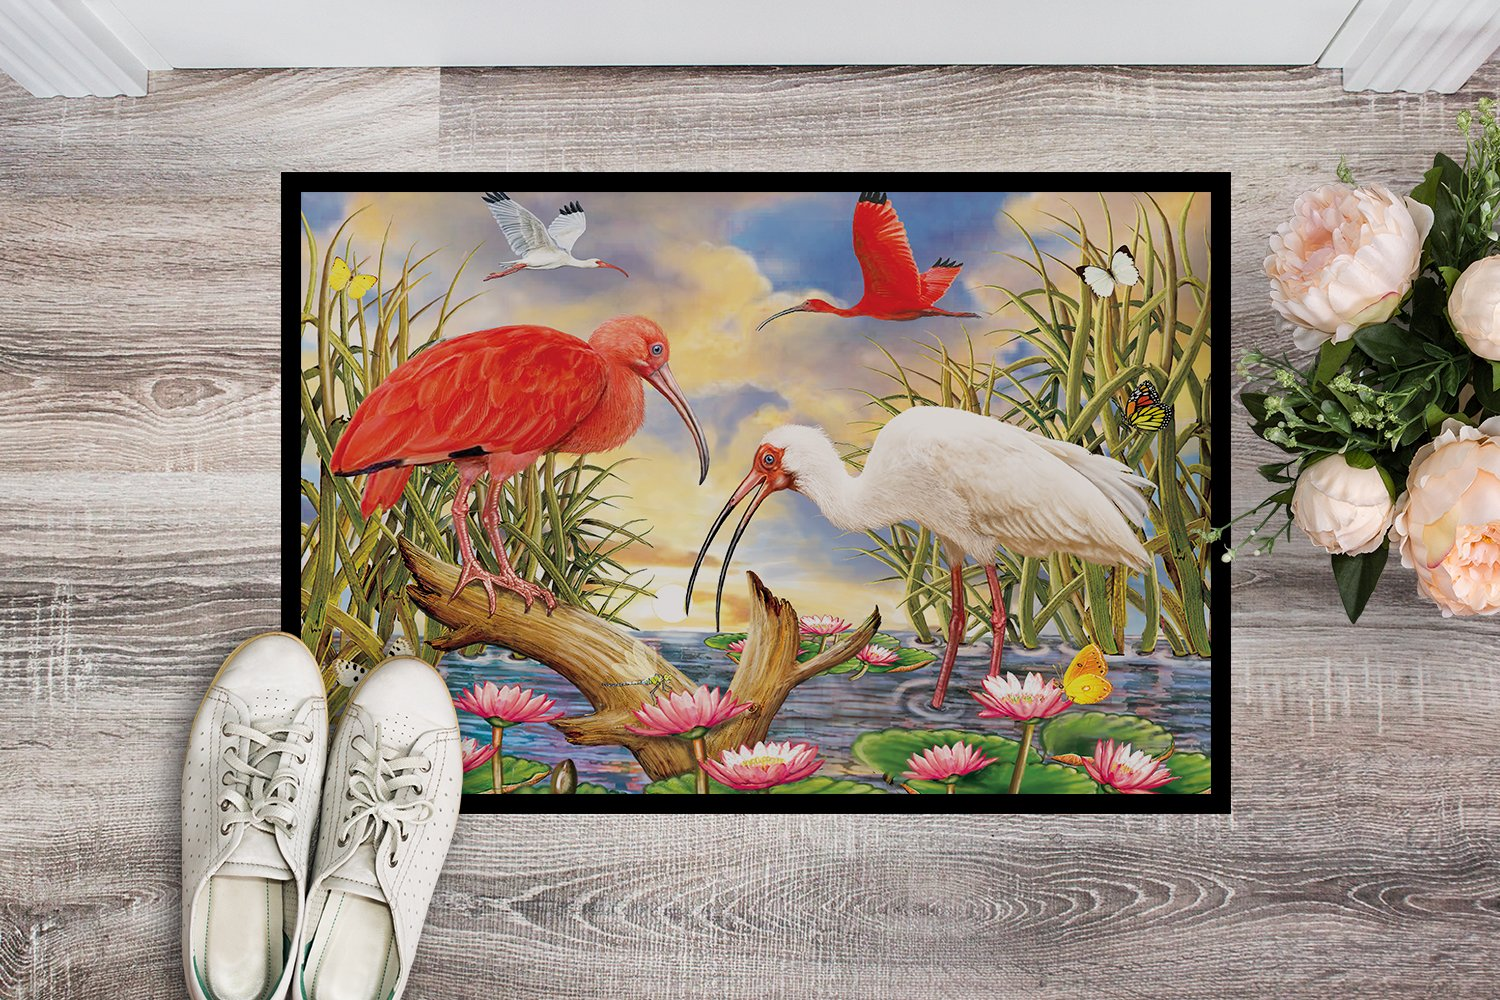 Scarlet And White Ibis Indoor or Outdoor Mat 24x36 PRS4033JMAT by Caroline's Treasures